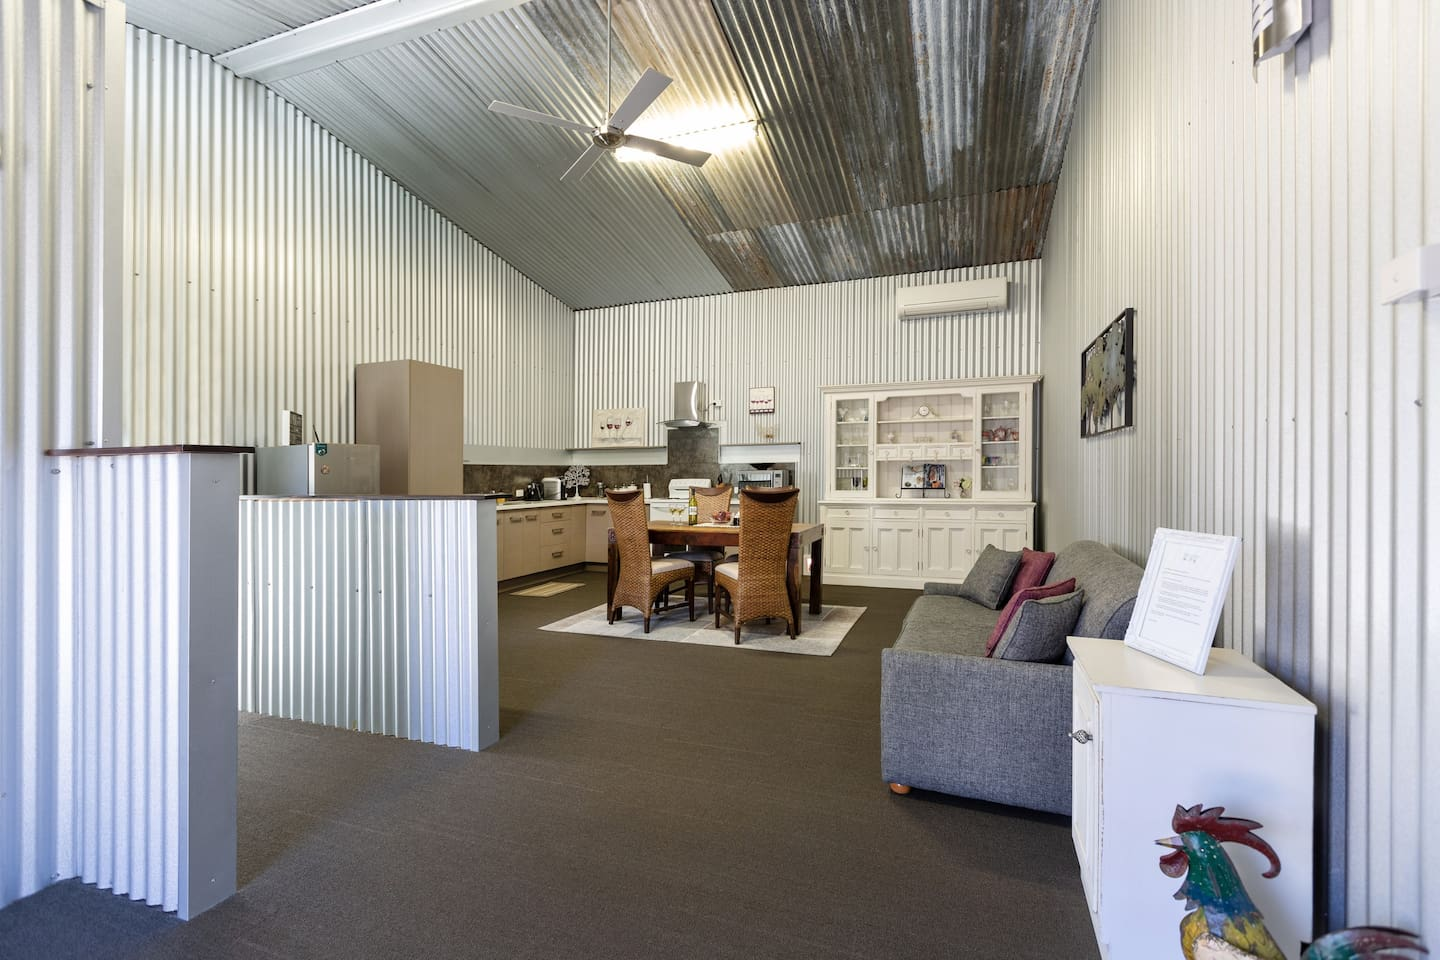 Very spacious kitchen/dining area in our renovated Barn located on 10 tranquil acres.  There's a sofa bed should you have an extra guest or two want to join you on your Hunter escape